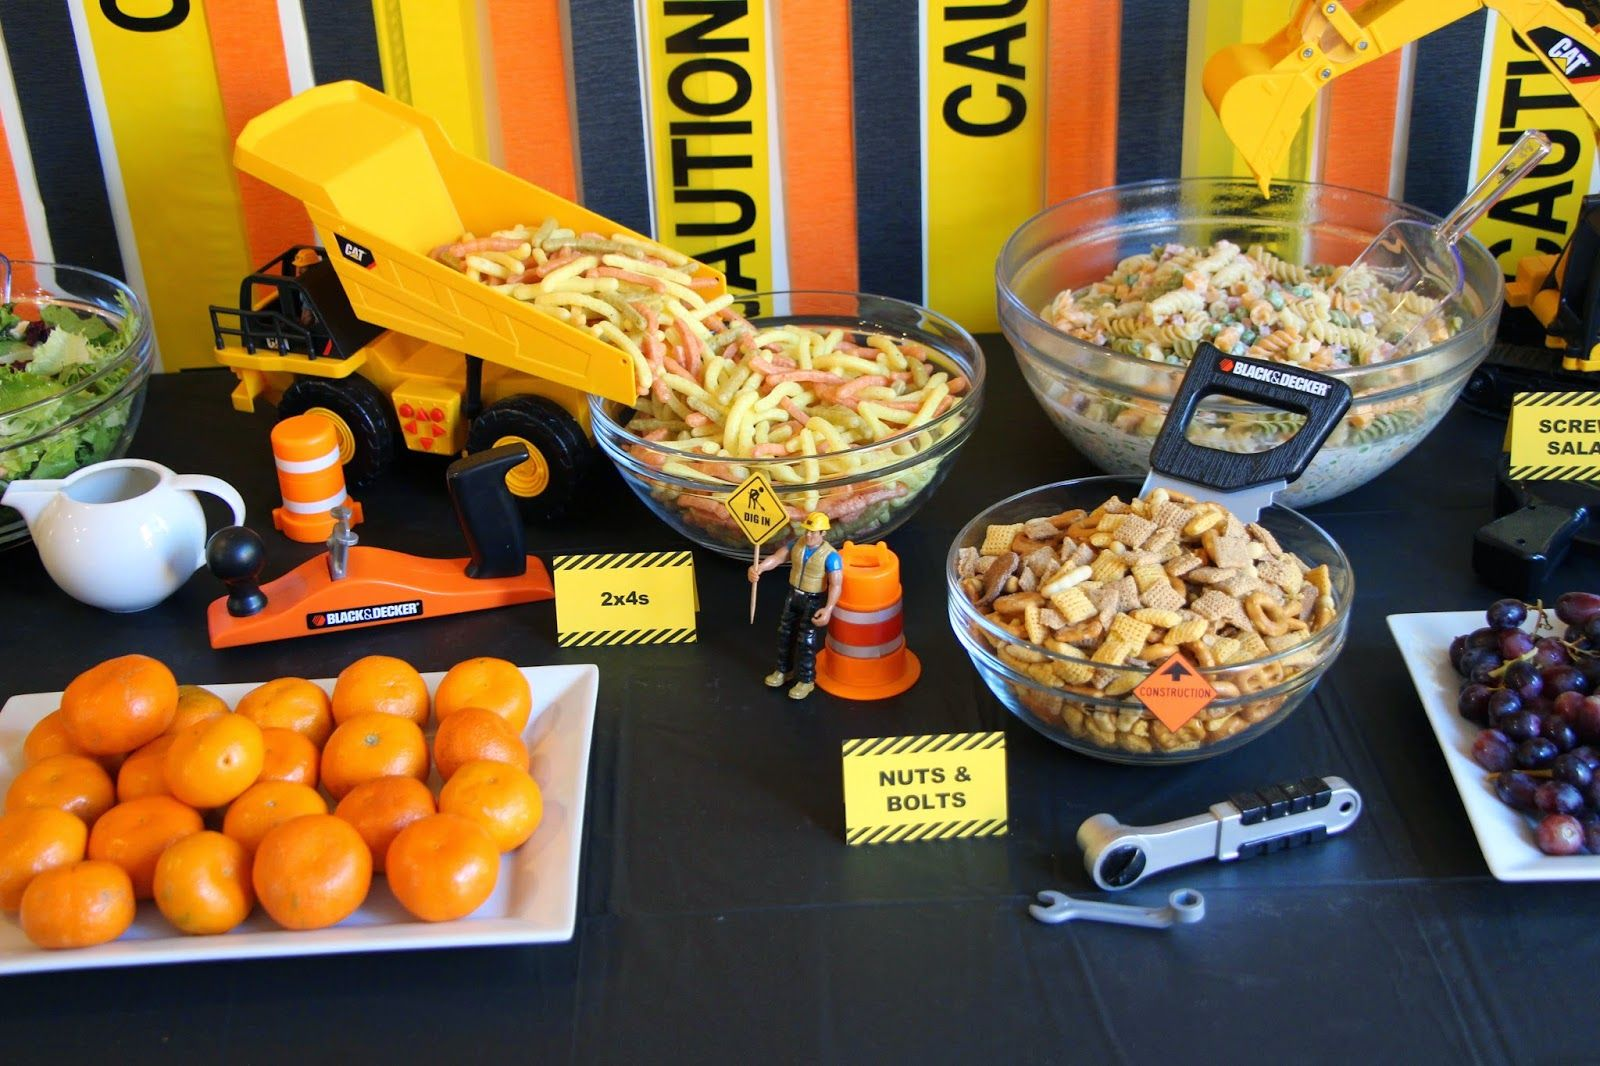 Construction birthday party food table 2x4s nuts and